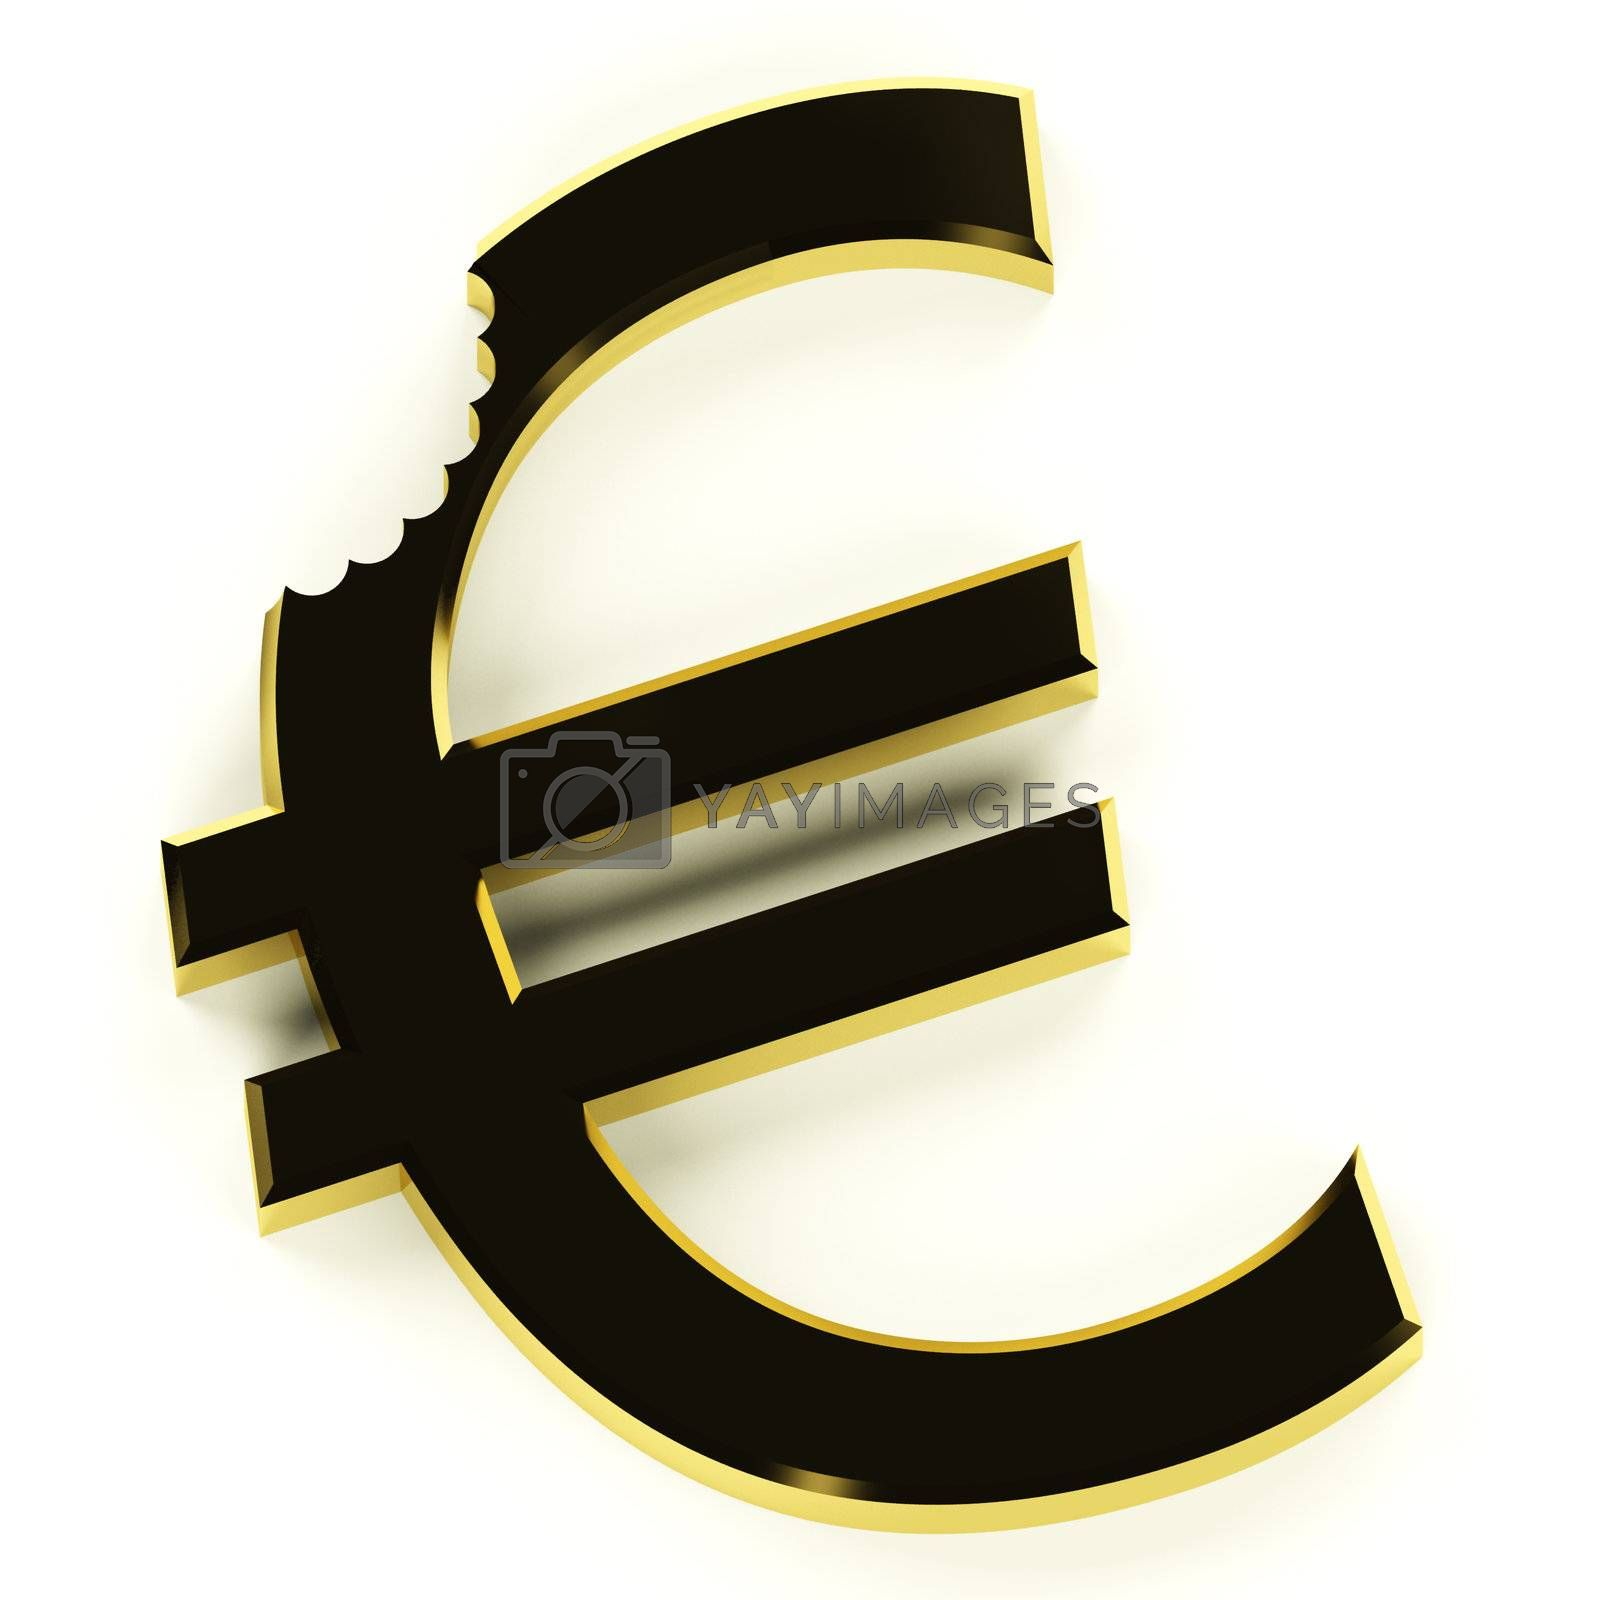 Euro With Bite Showing Devaluation Economic Crisis And Recessions